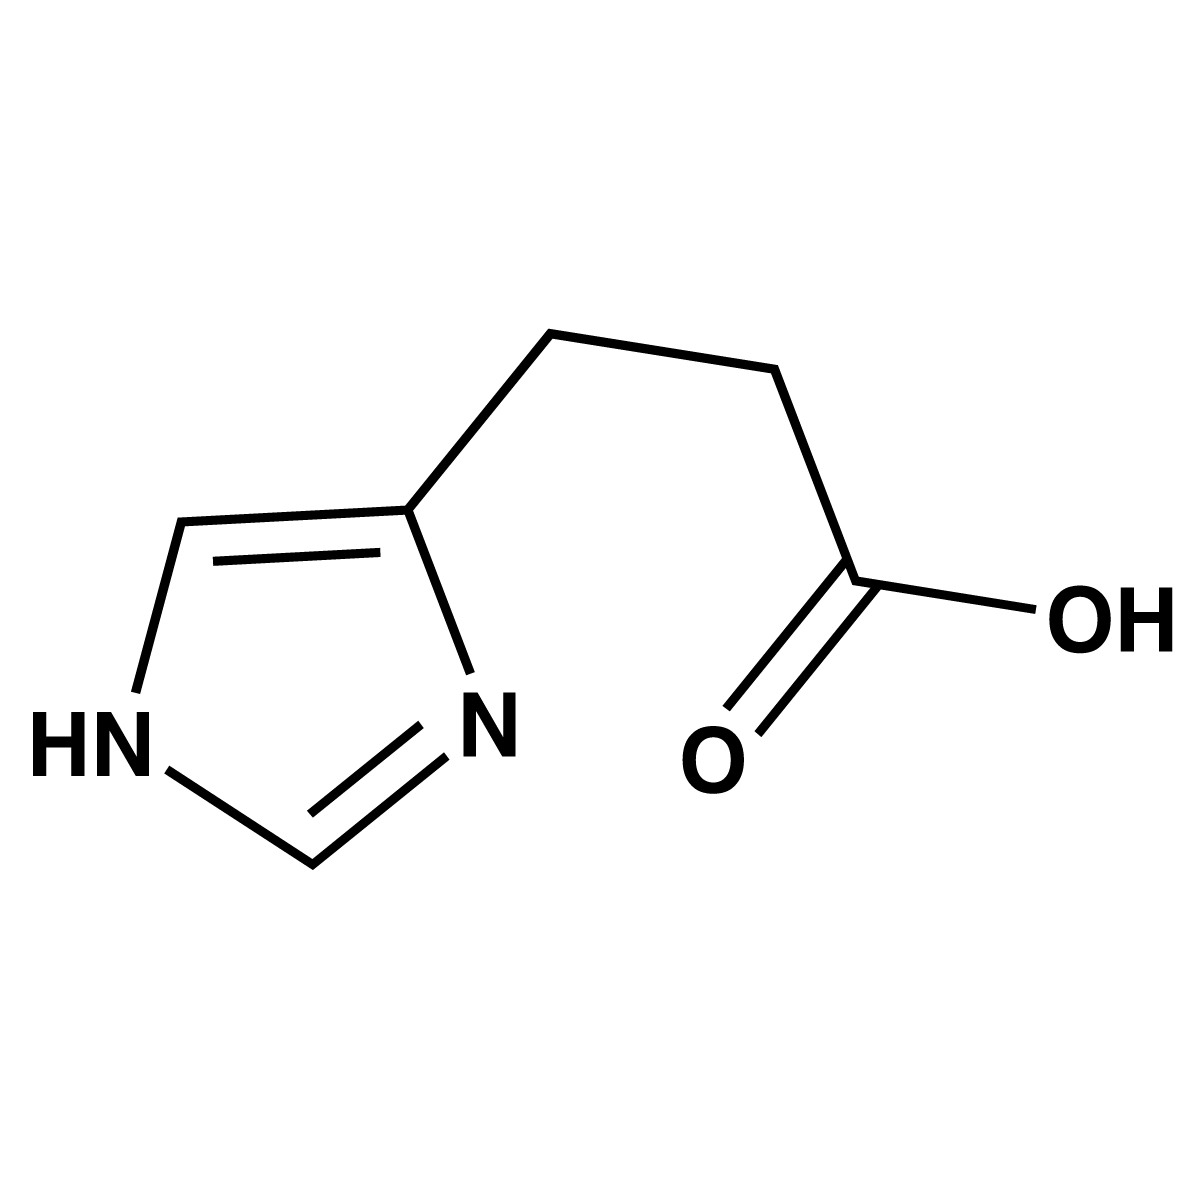 cis-Urocanic Acid